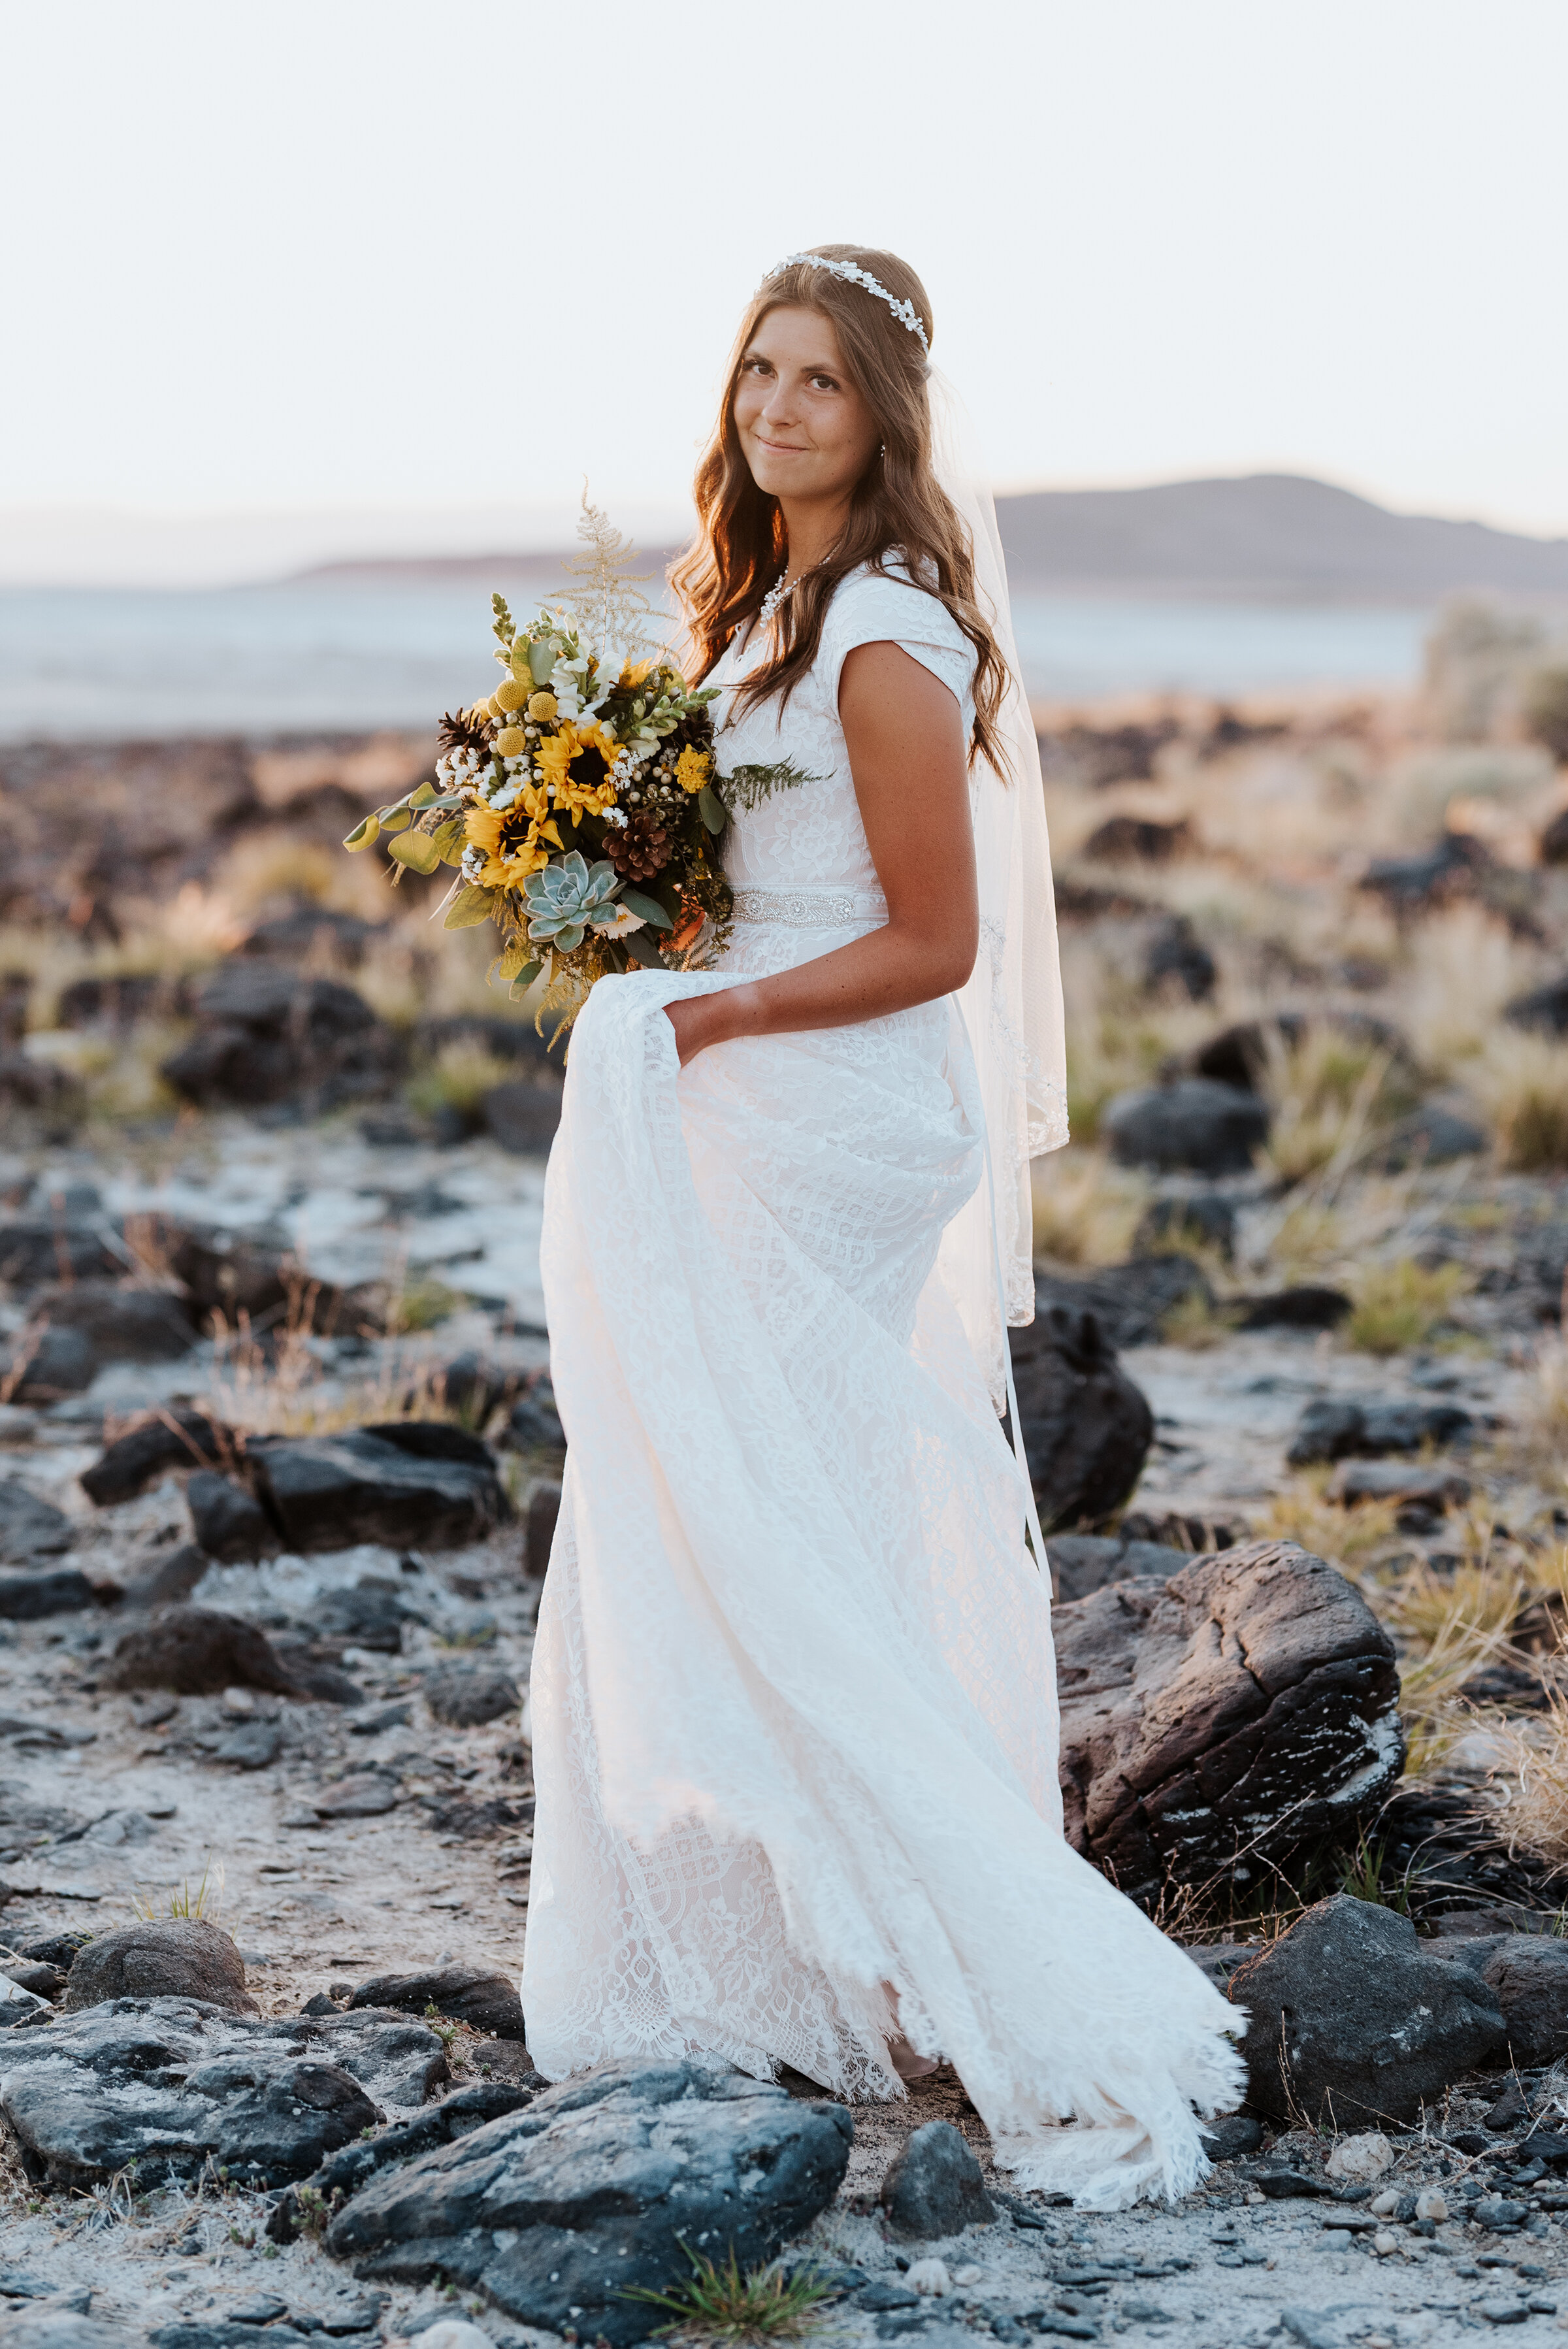 The stunning bride walking across the rocky Spiral Jetty shore with her sunflower bouquet and halo headband holding her gorgeous veil. #spiraljetty #GreatSaltLake #formalsession #SaltFlats #sunsetphotosession #NorthernUtah #weddingphotographer #formalphotographer #brideandgroom #outdoorformals #weddingformalphotography